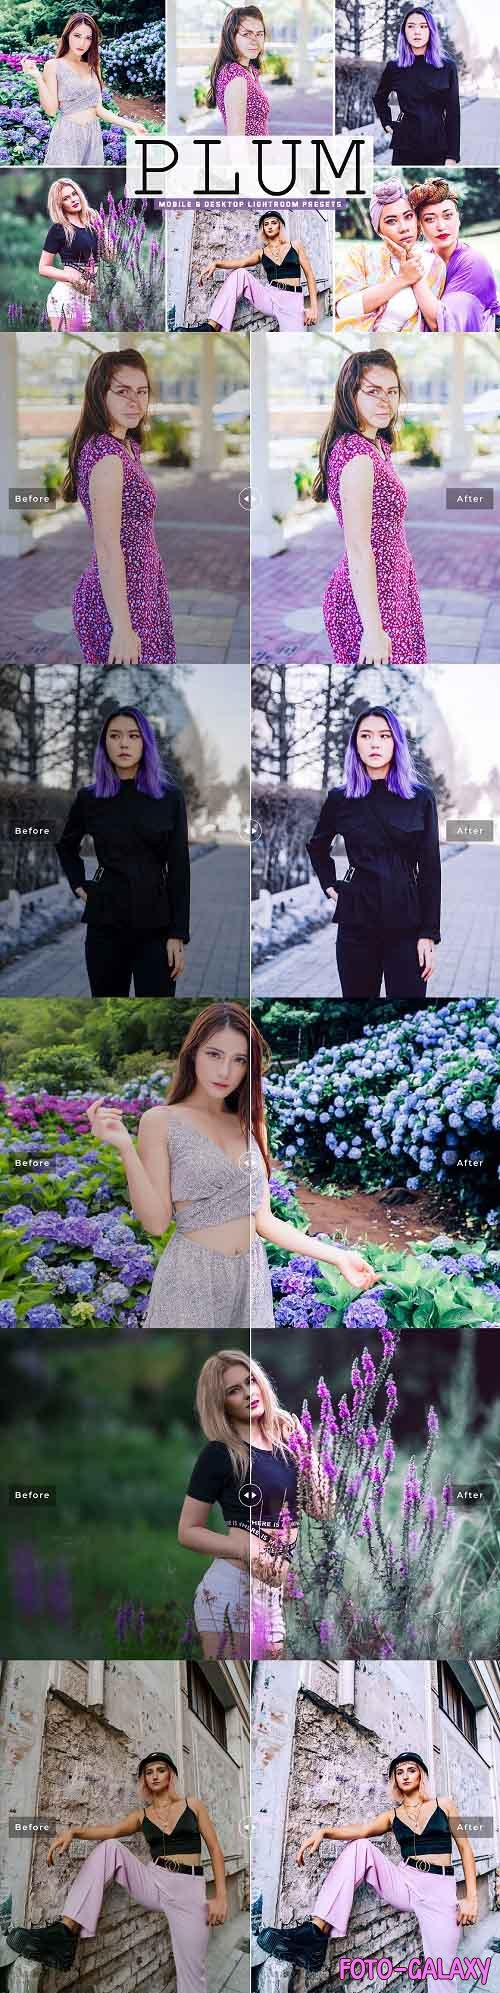 Plum Pro Lightroom Presets - 5437478 - Mobile & Desktop